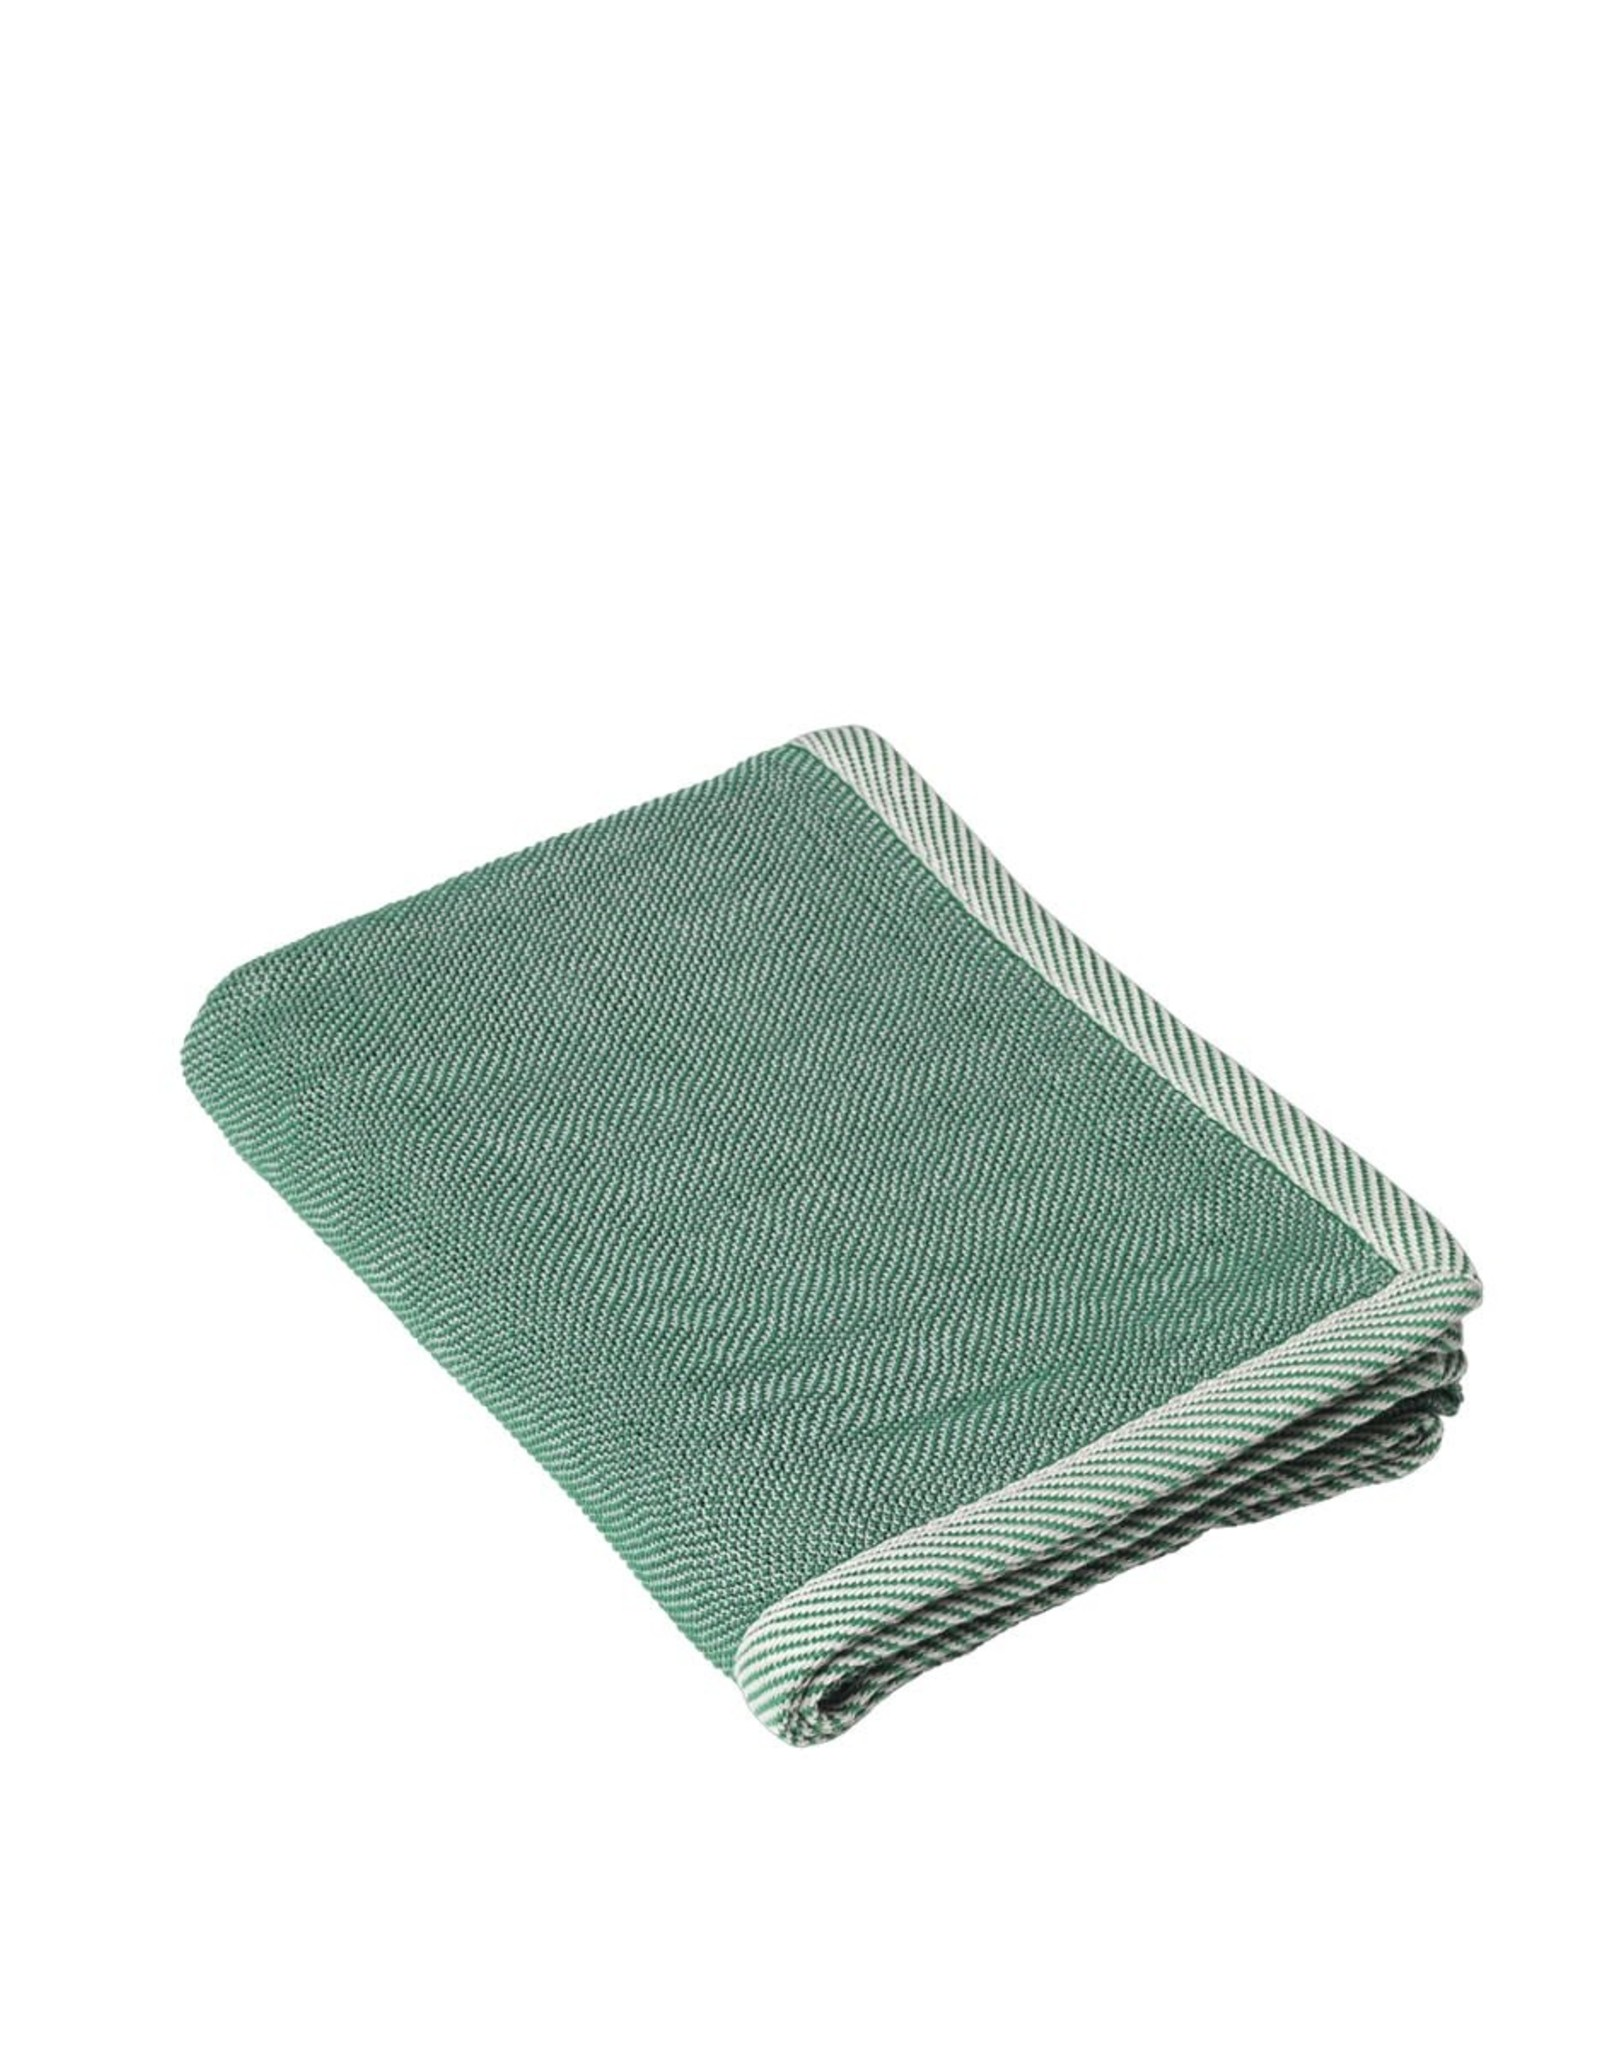 Muuto Muuto Ripple Throw Green